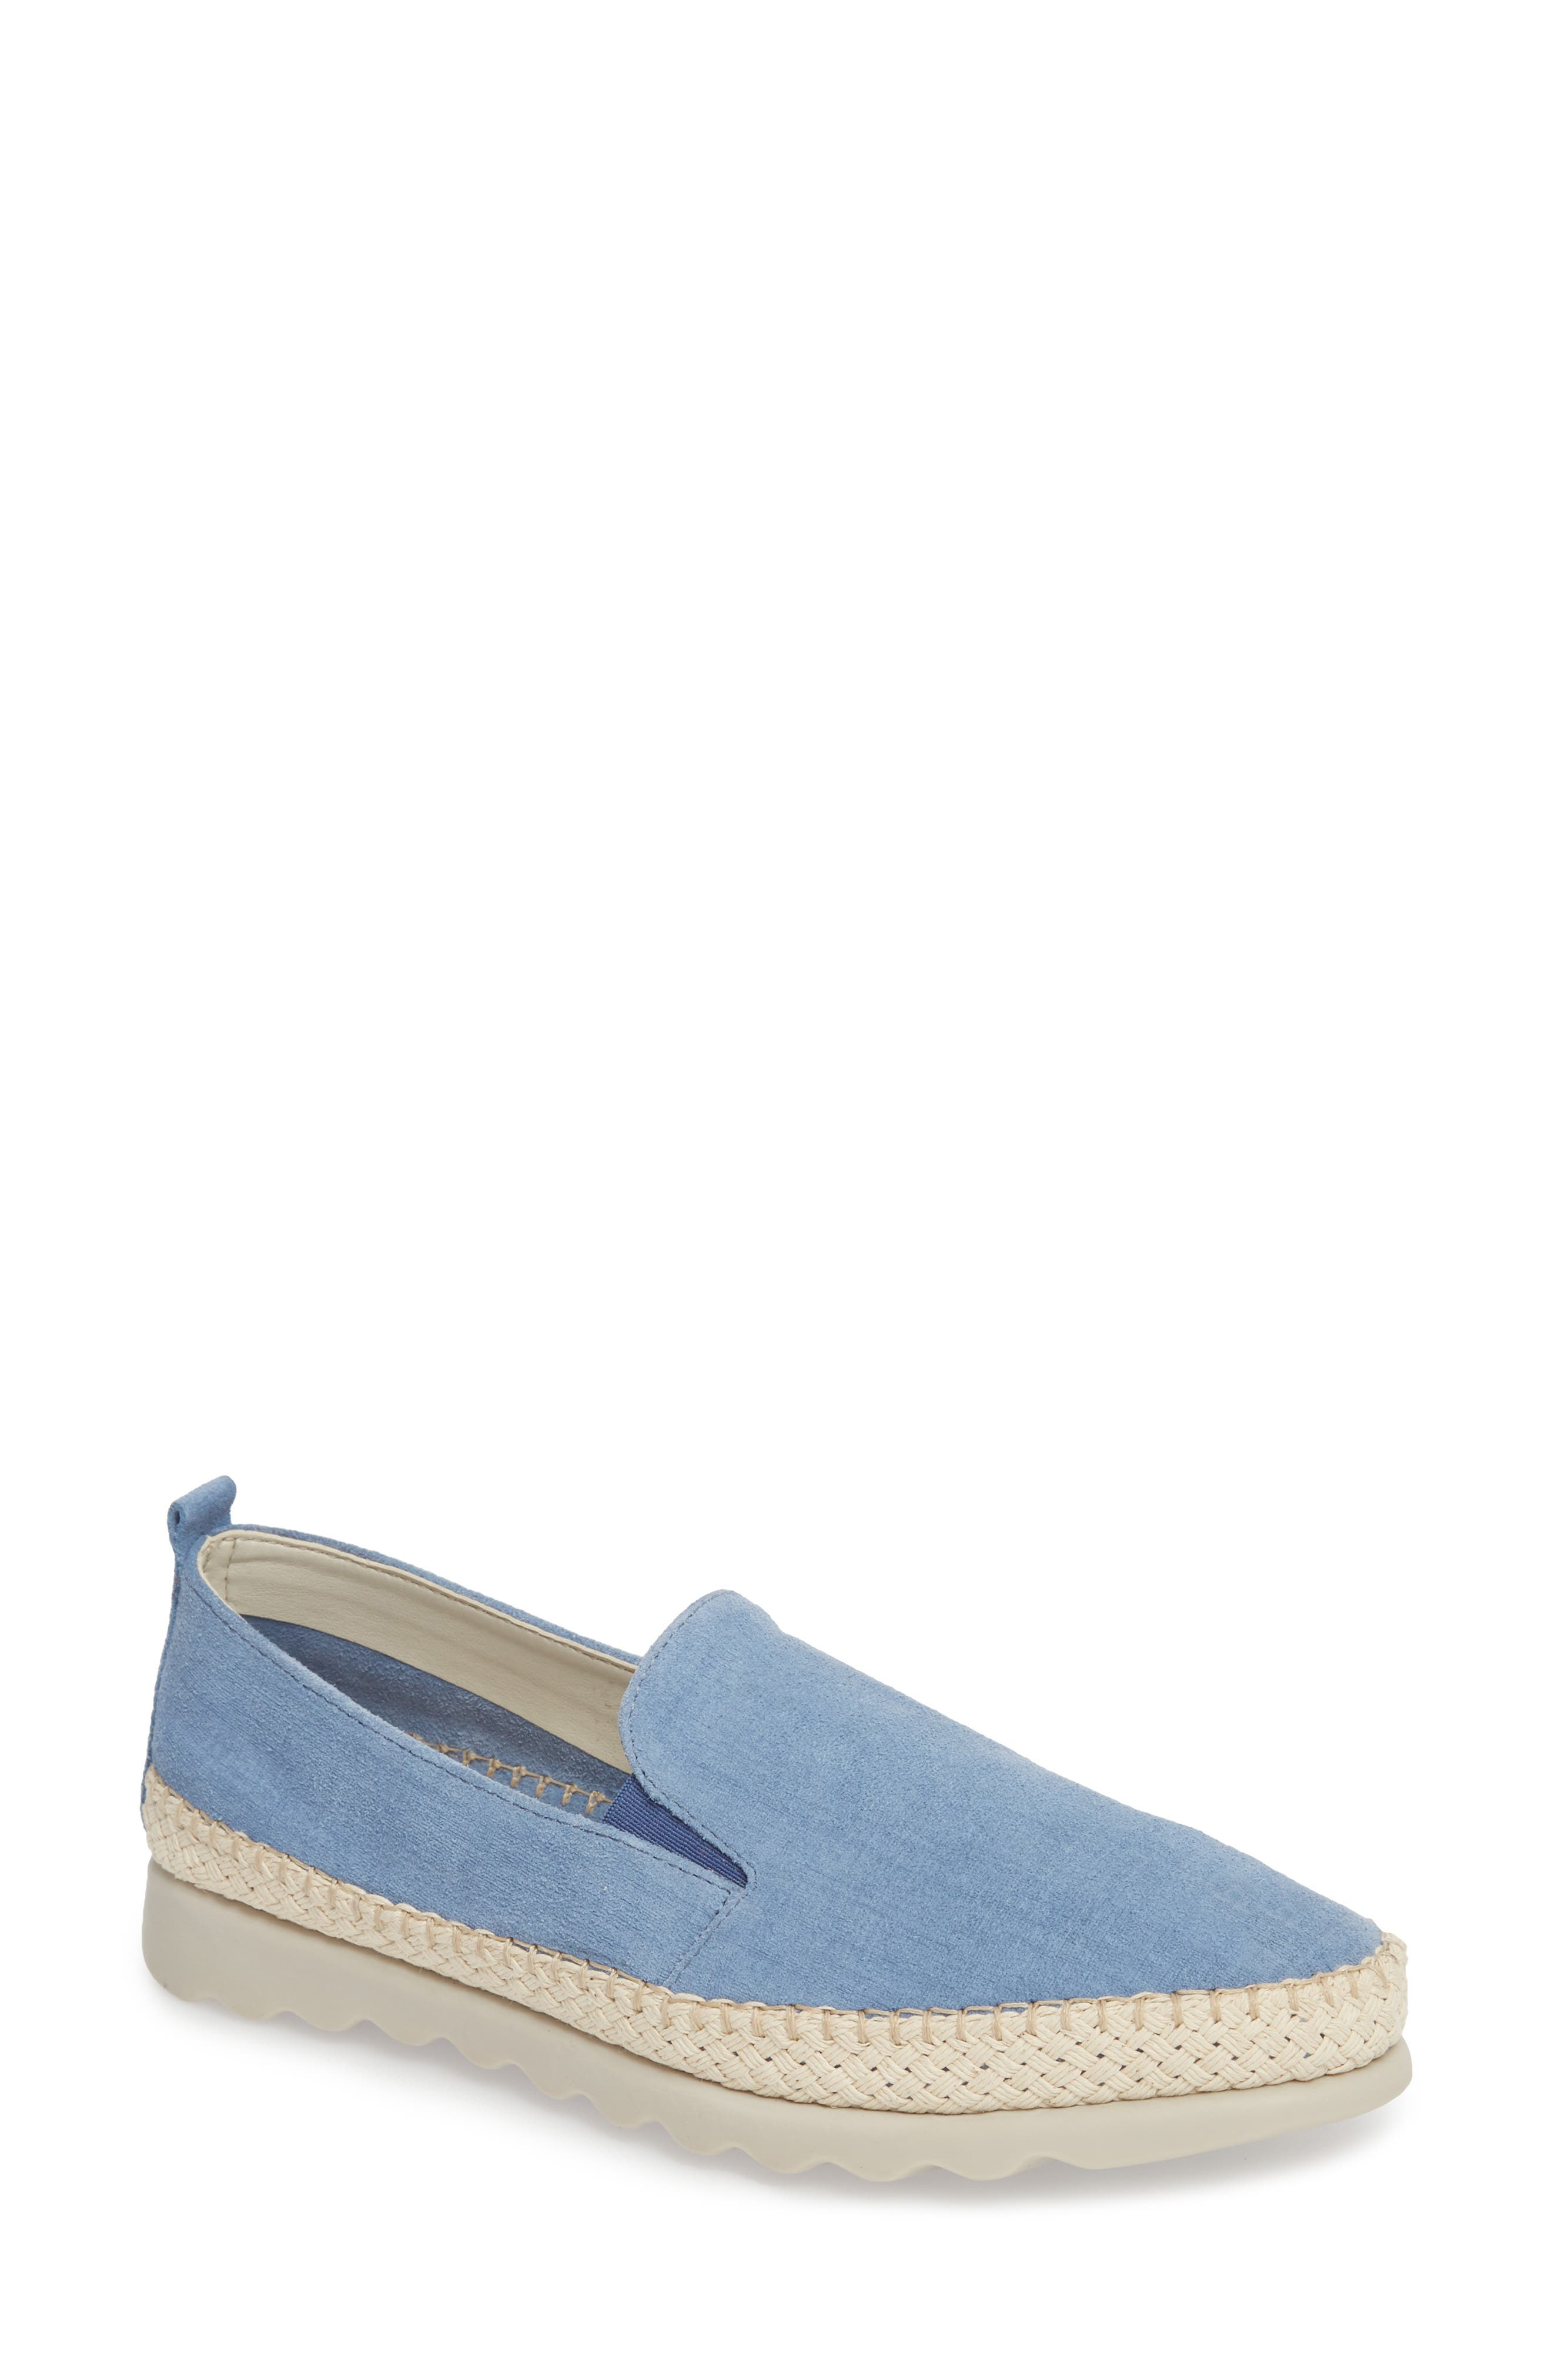 Chappie Slip-On Sneaker,                             Main thumbnail 1, color,                             DENIM PRINTED SUEDE